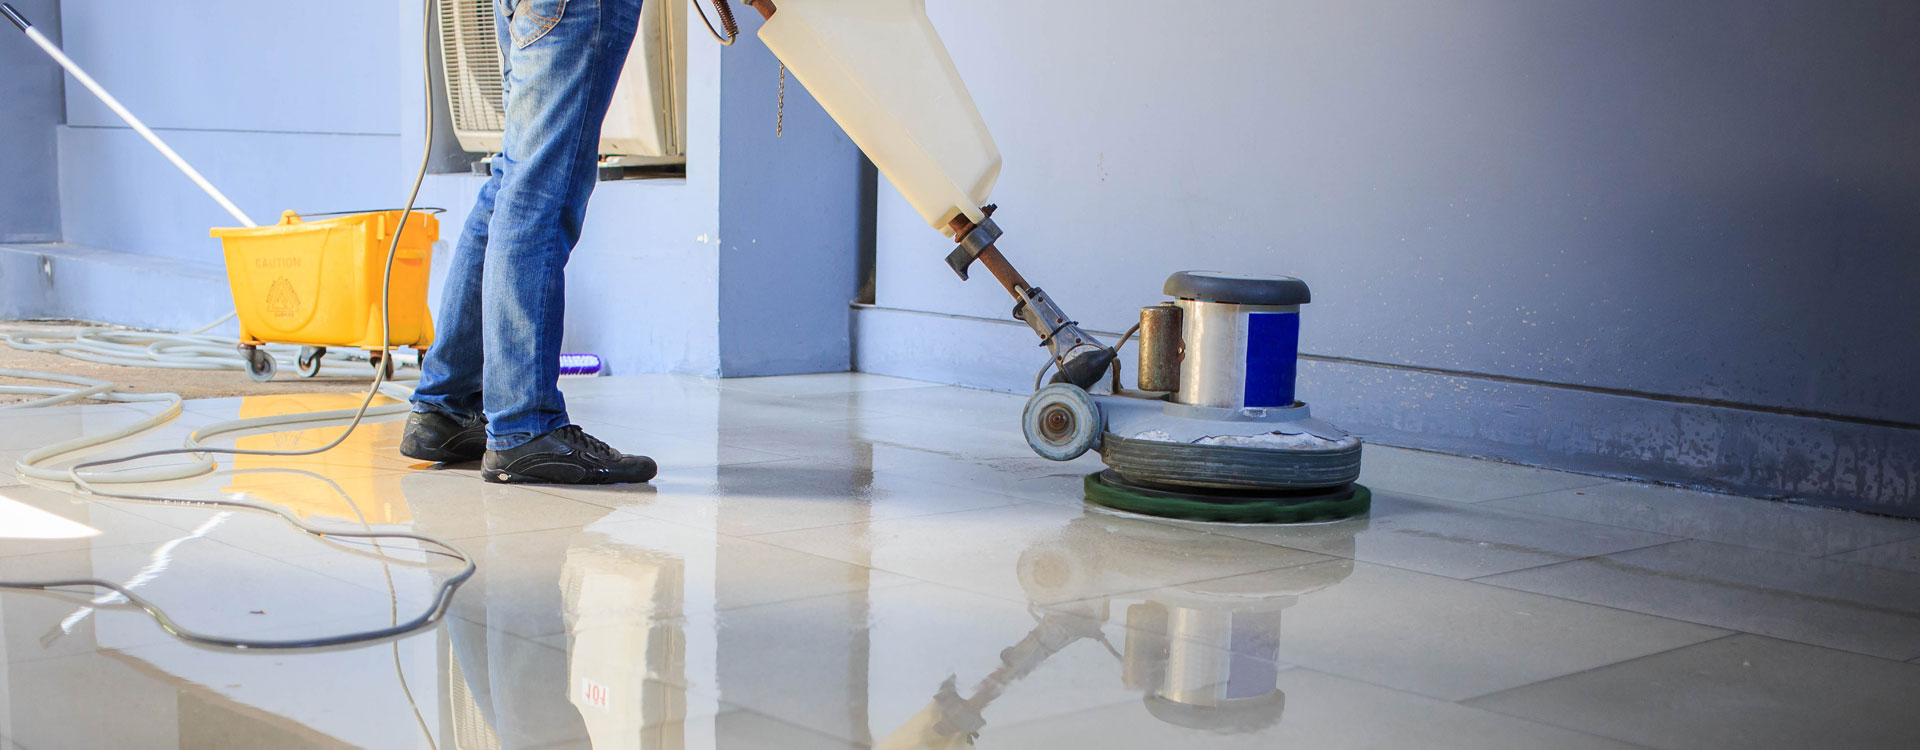 commercial-business-floor-cleaning-nh